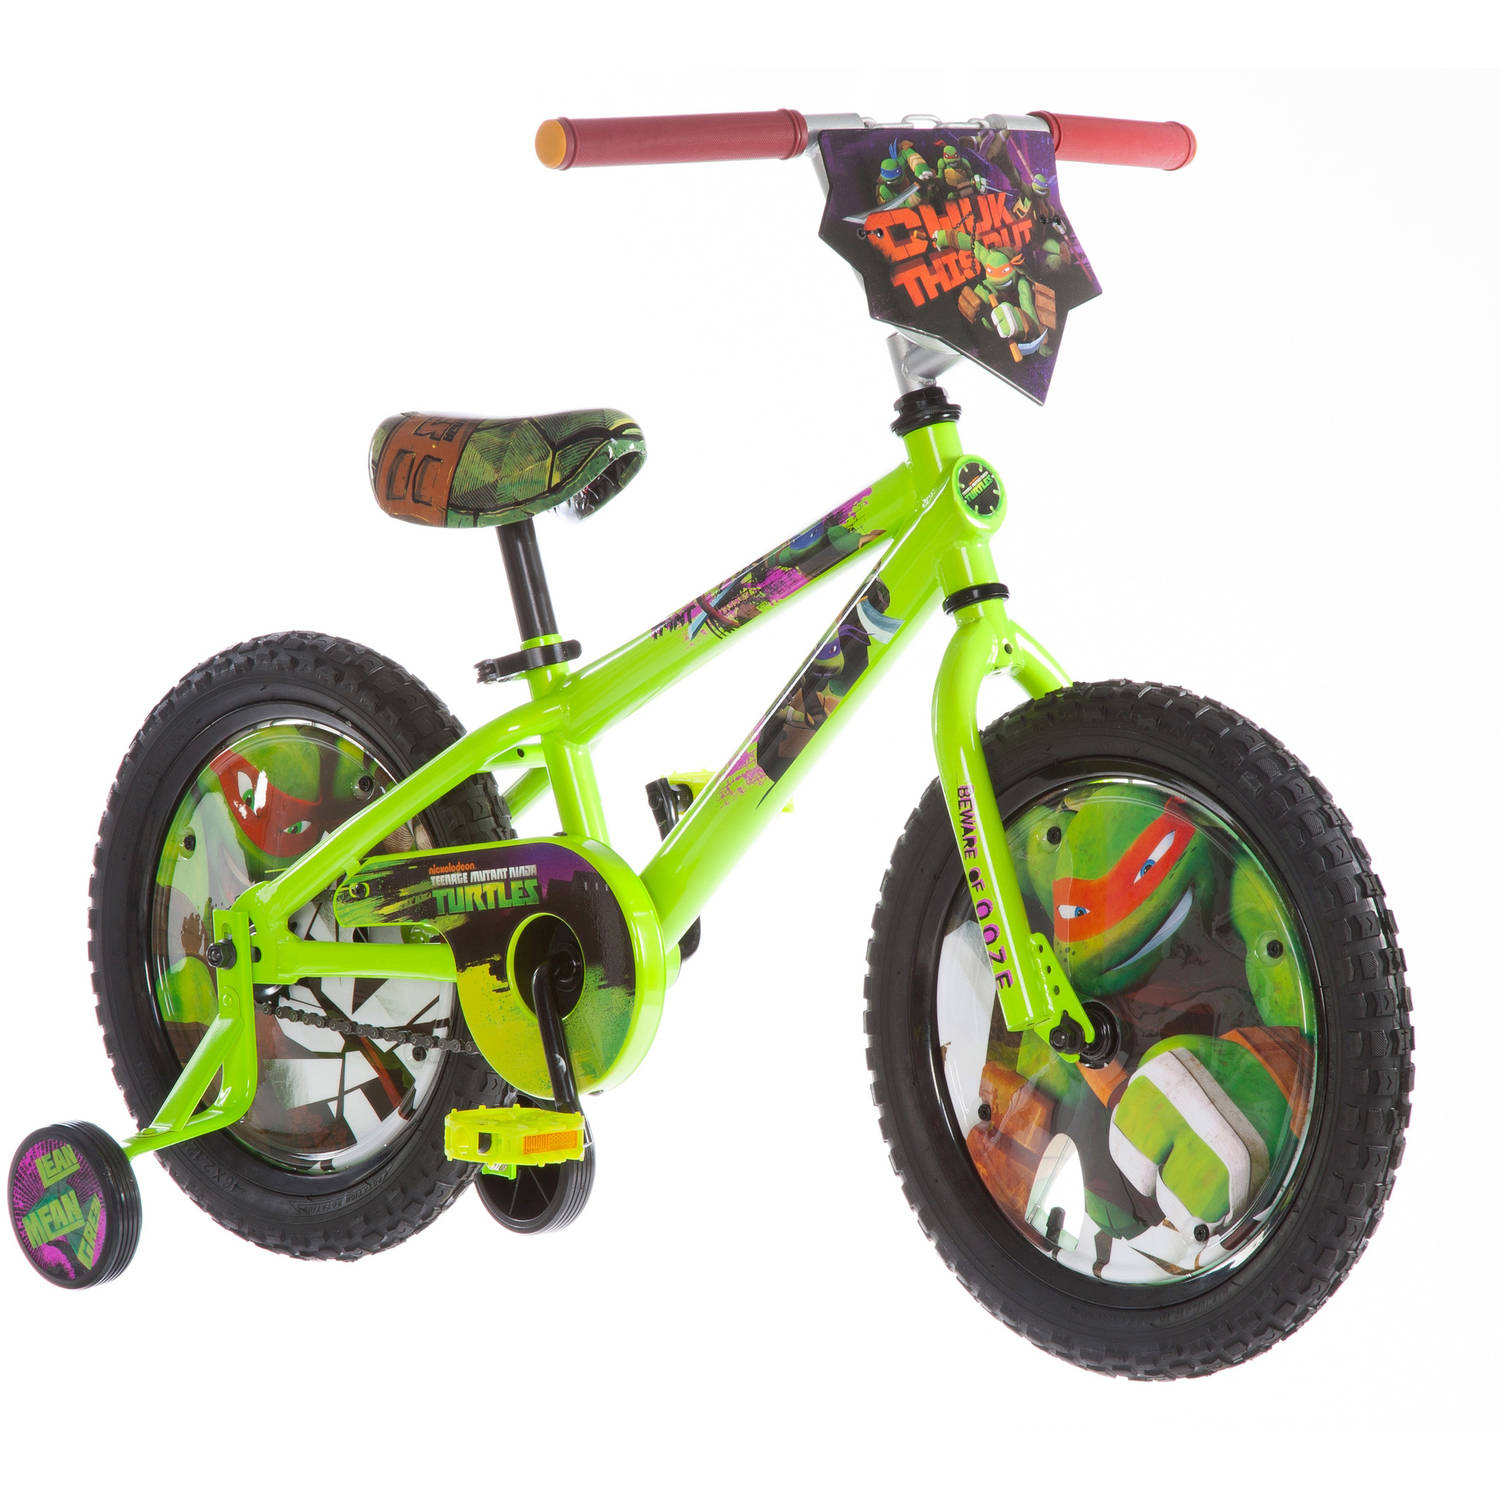 "16"" Nickelodeon Teenage Mutant Ninja Turtles Boys' Bike, Green"